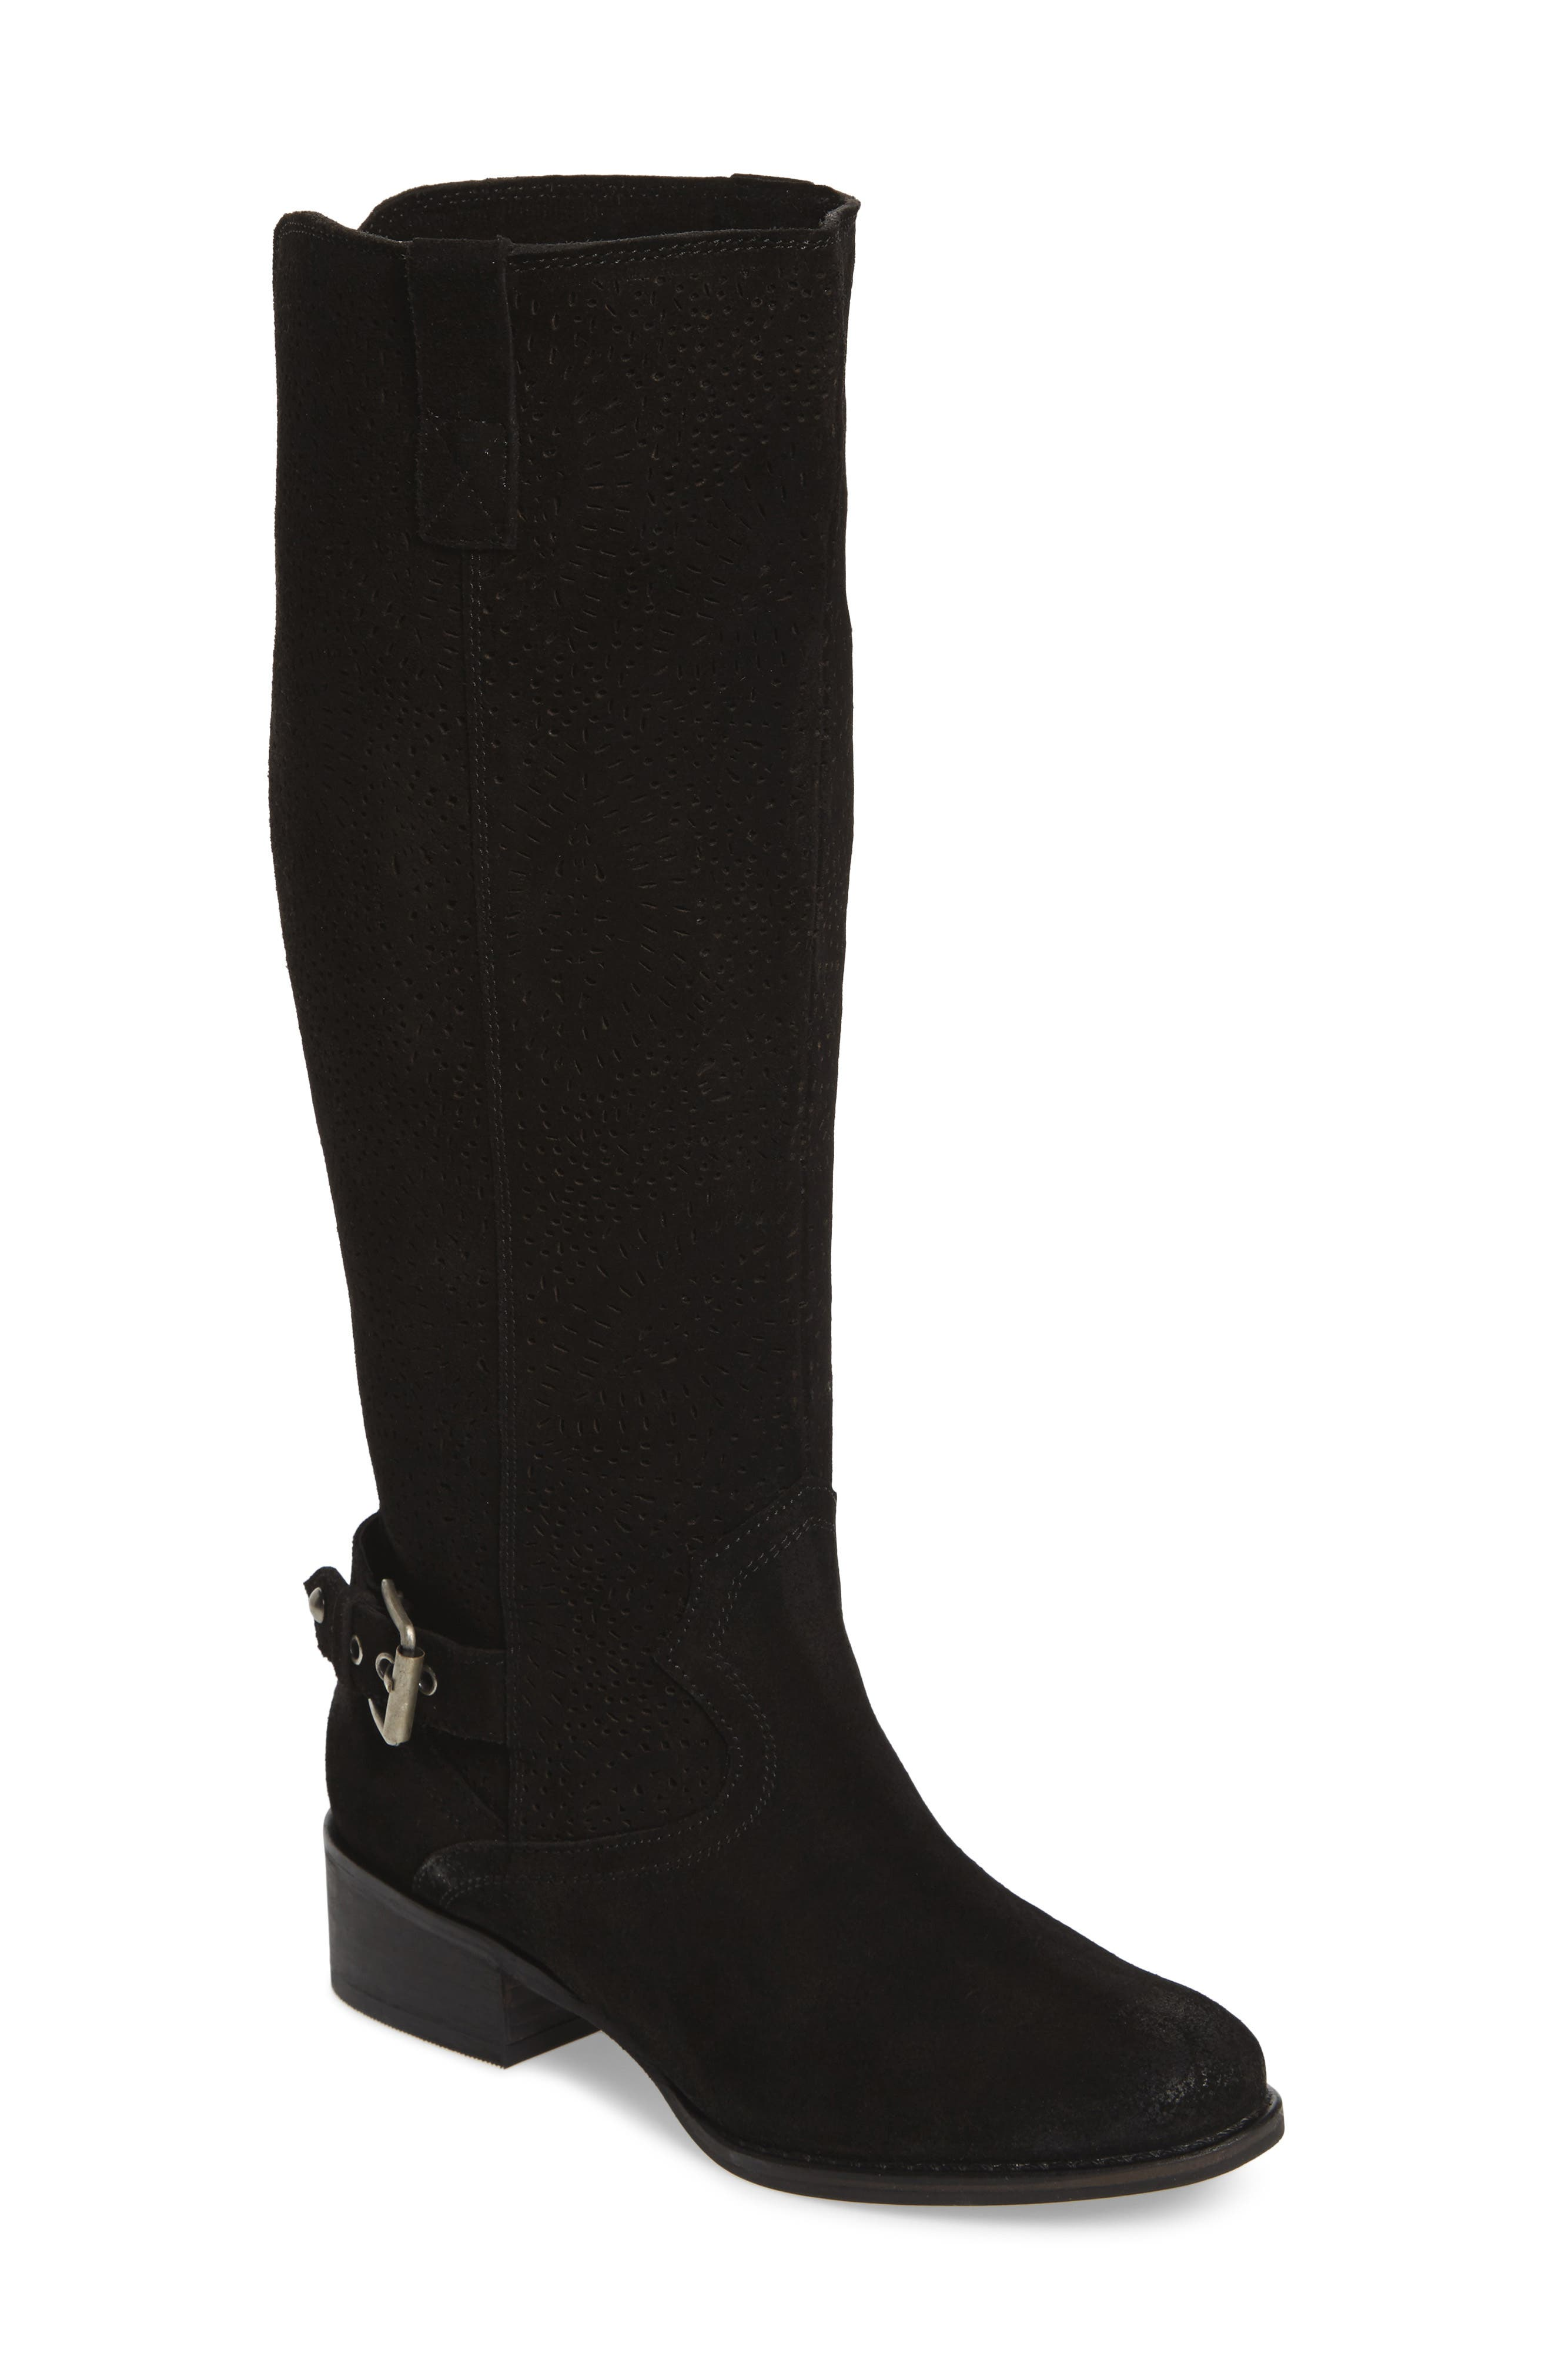 Ziba Tall Boot,                         Main,                         color, Black Suede